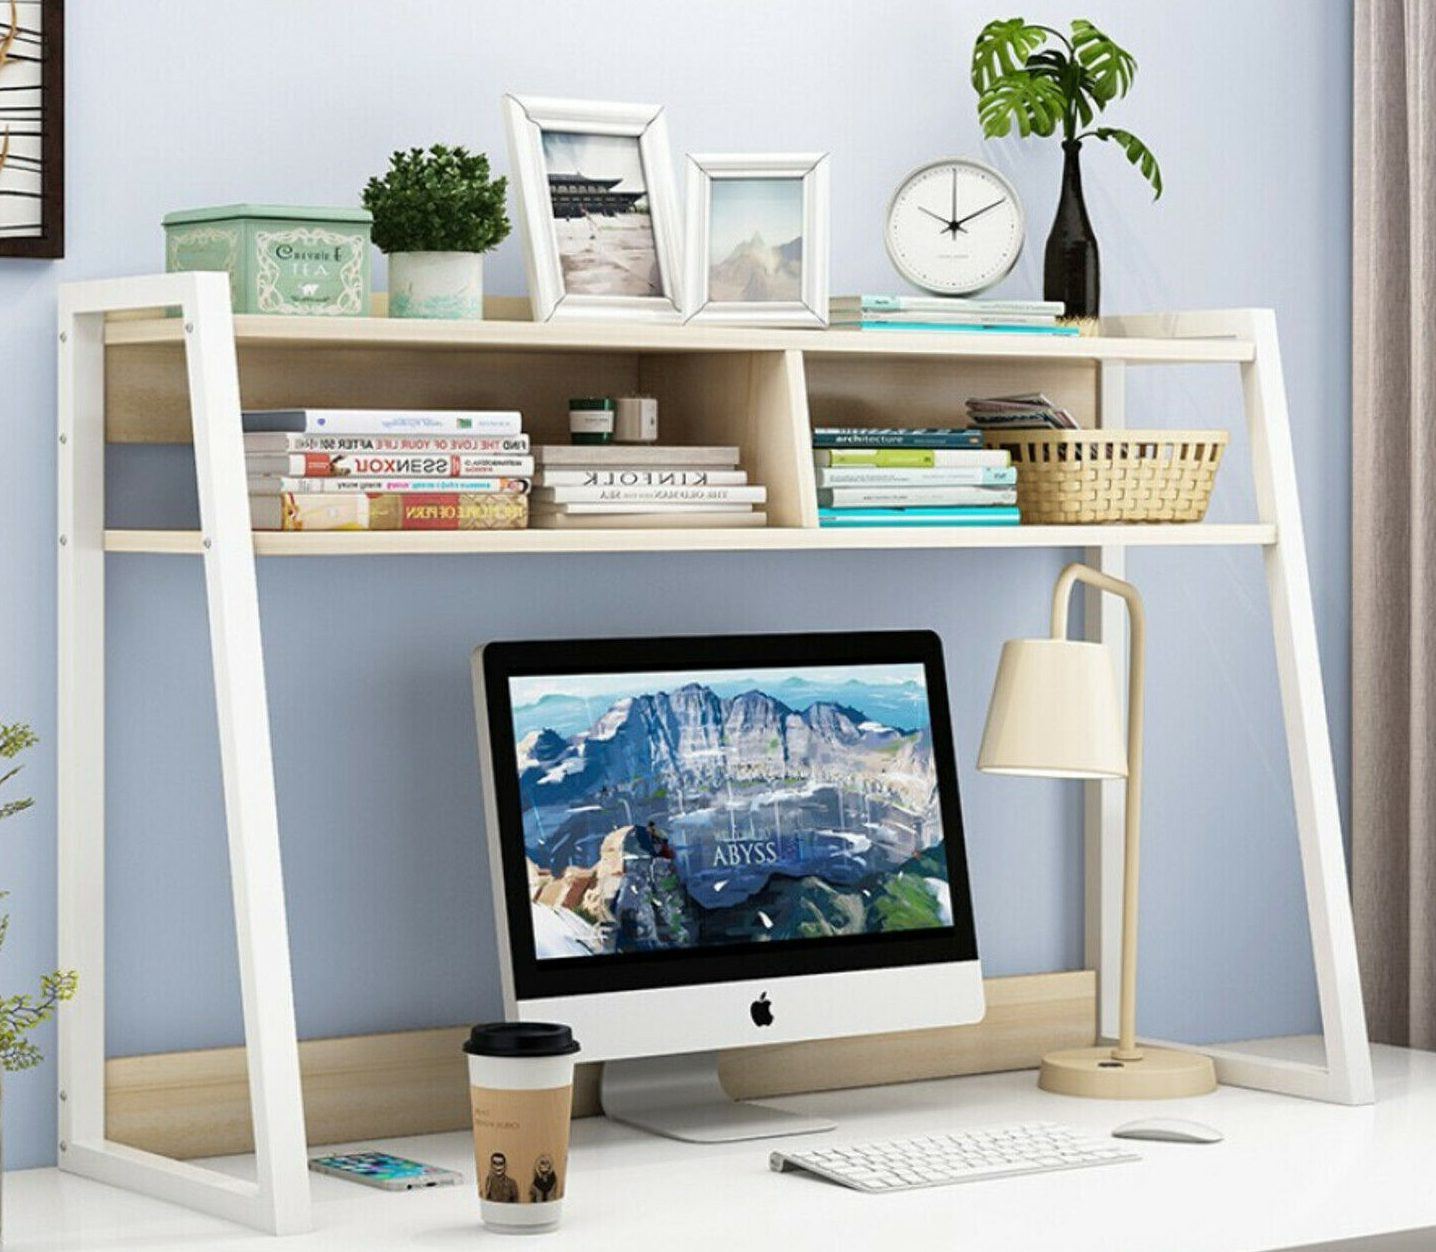 Above computer shelf storage idea